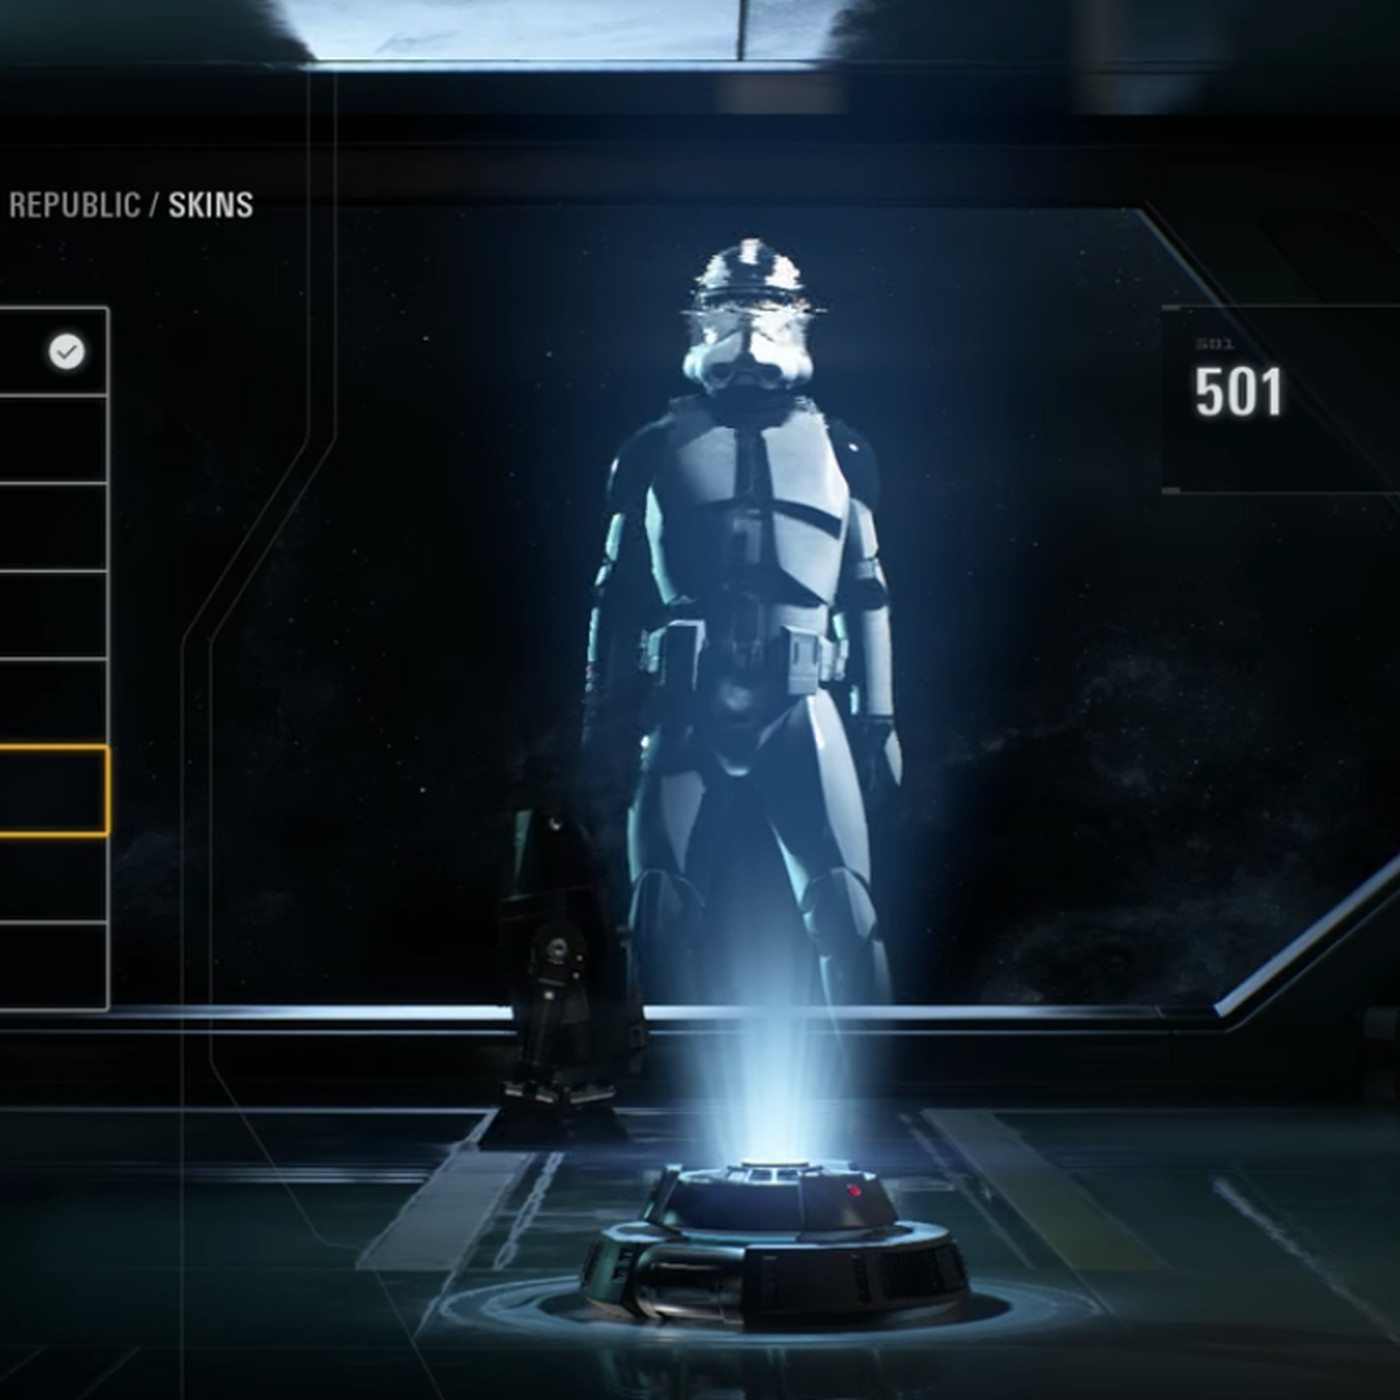 Star Wars Battlefront 2 Leak Shows Character Customization Options